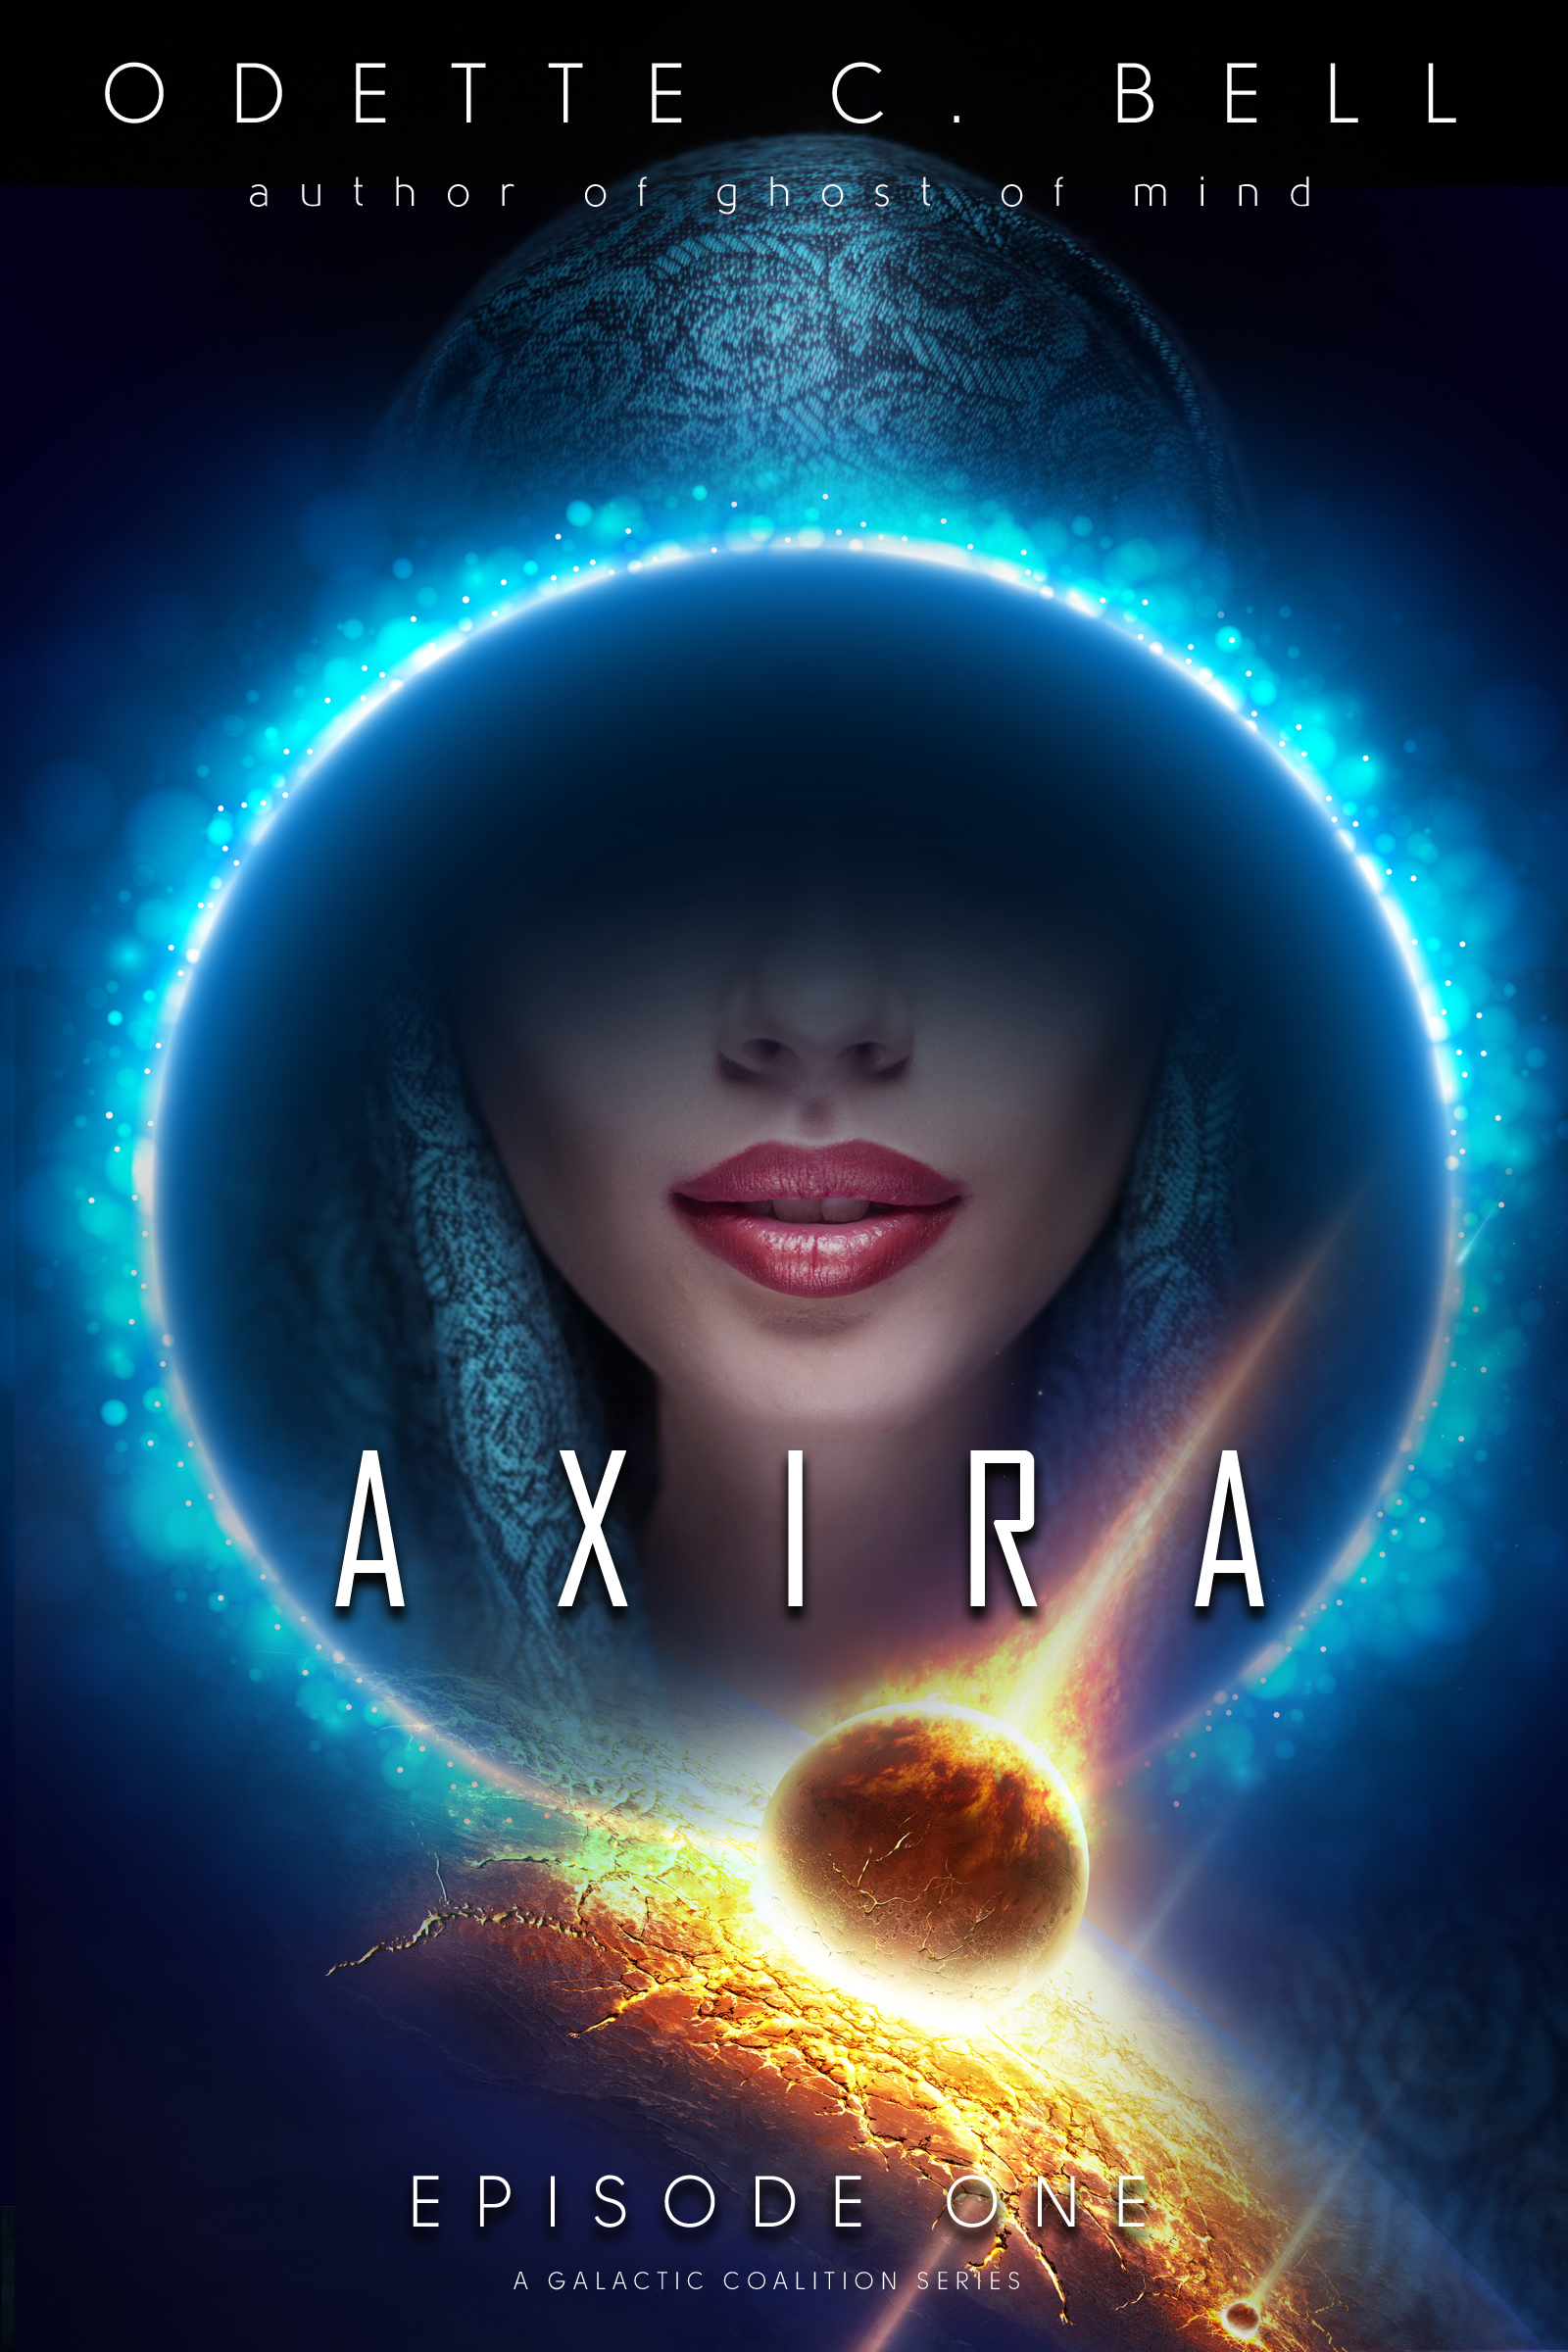 Axira Episode One (sst-v)